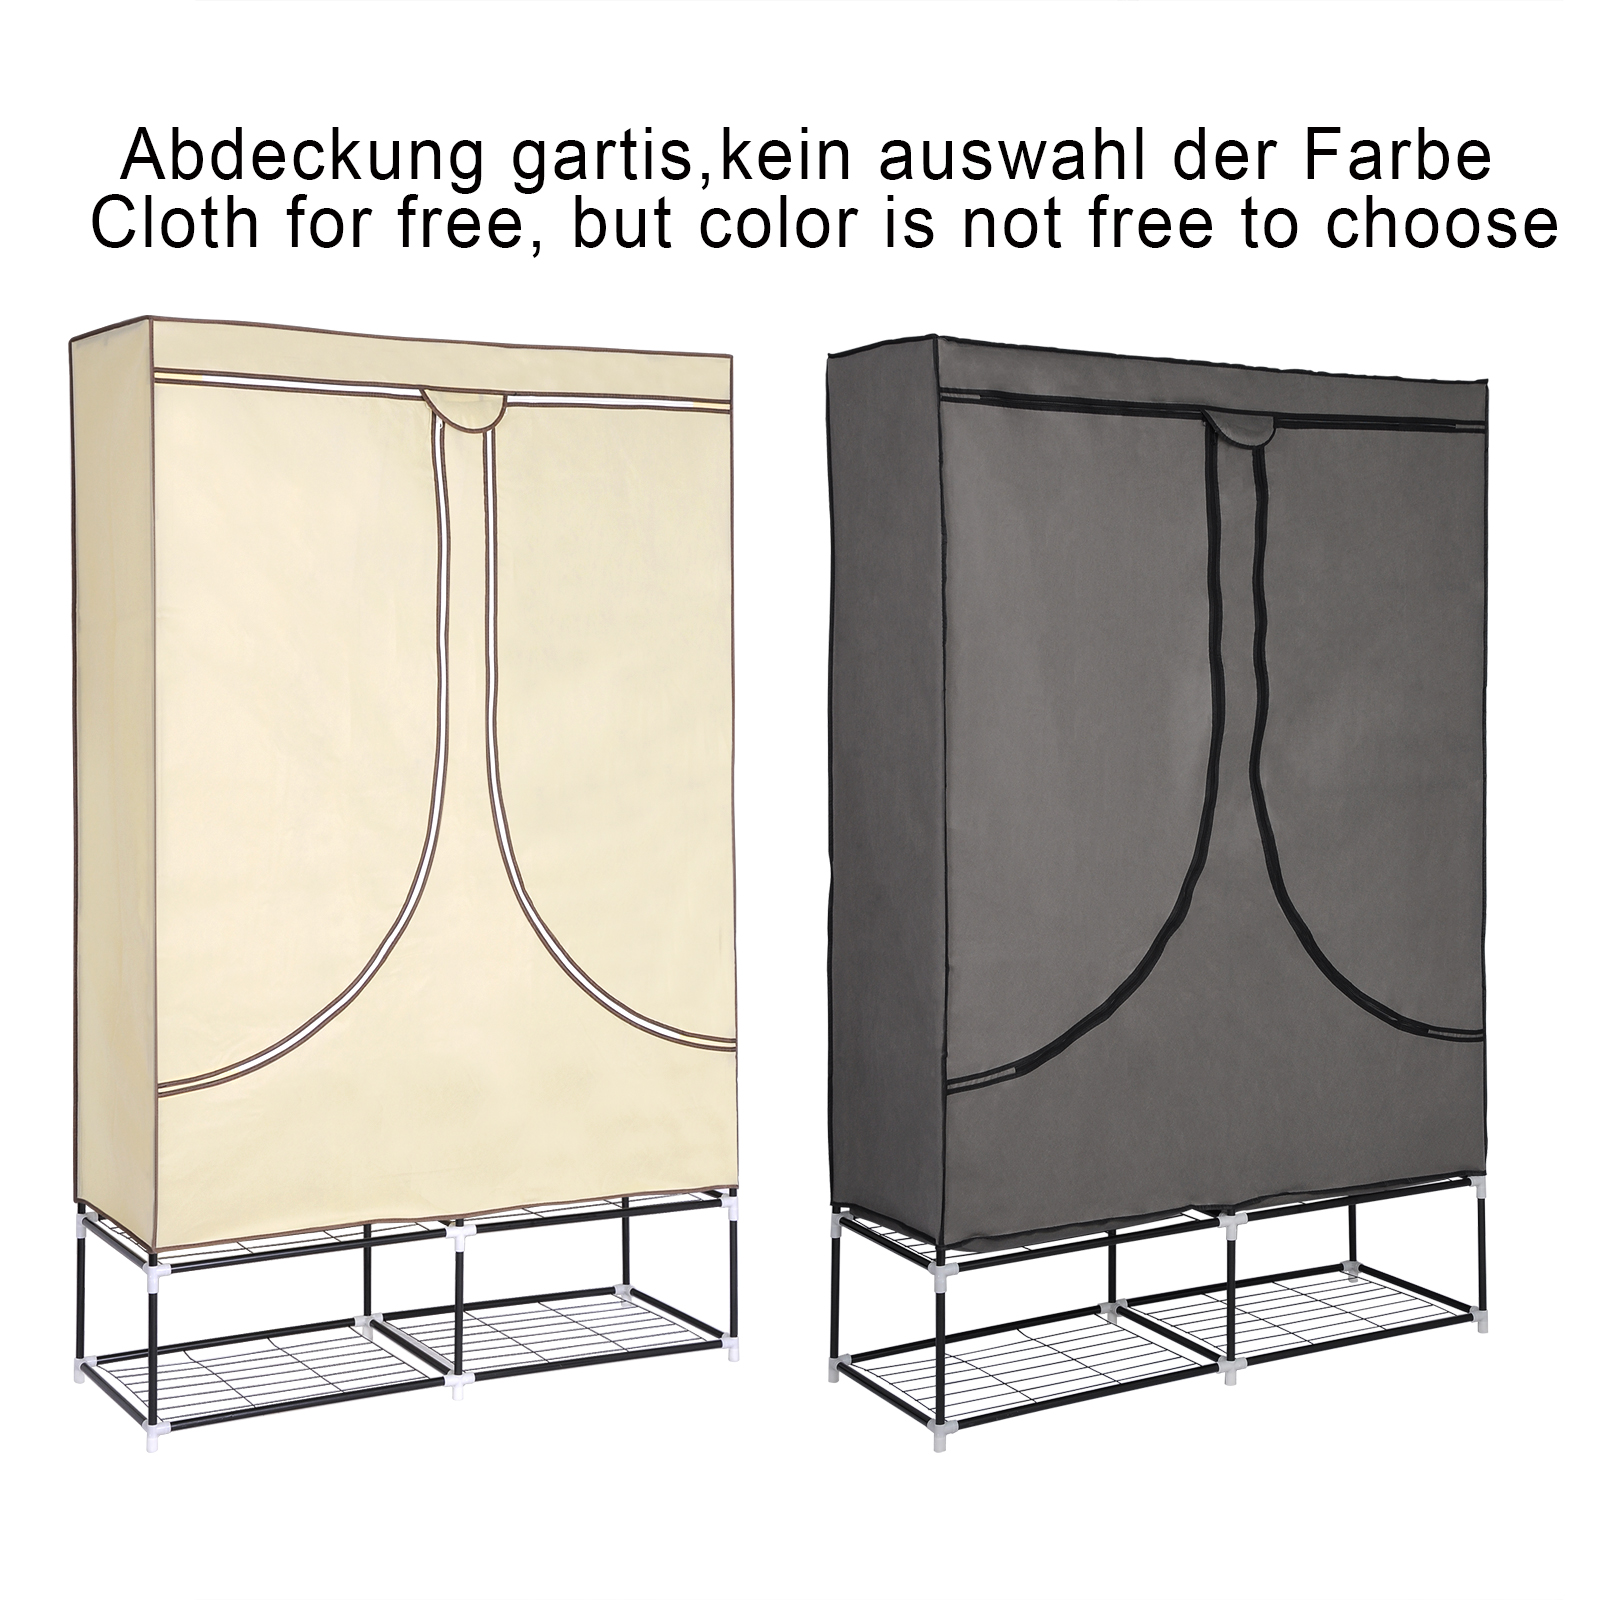 kleiderst nder kleiderstange garderobenst nder ablage korb w schesammler sr0029 ebay. Black Bedroom Furniture Sets. Home Design Ideas